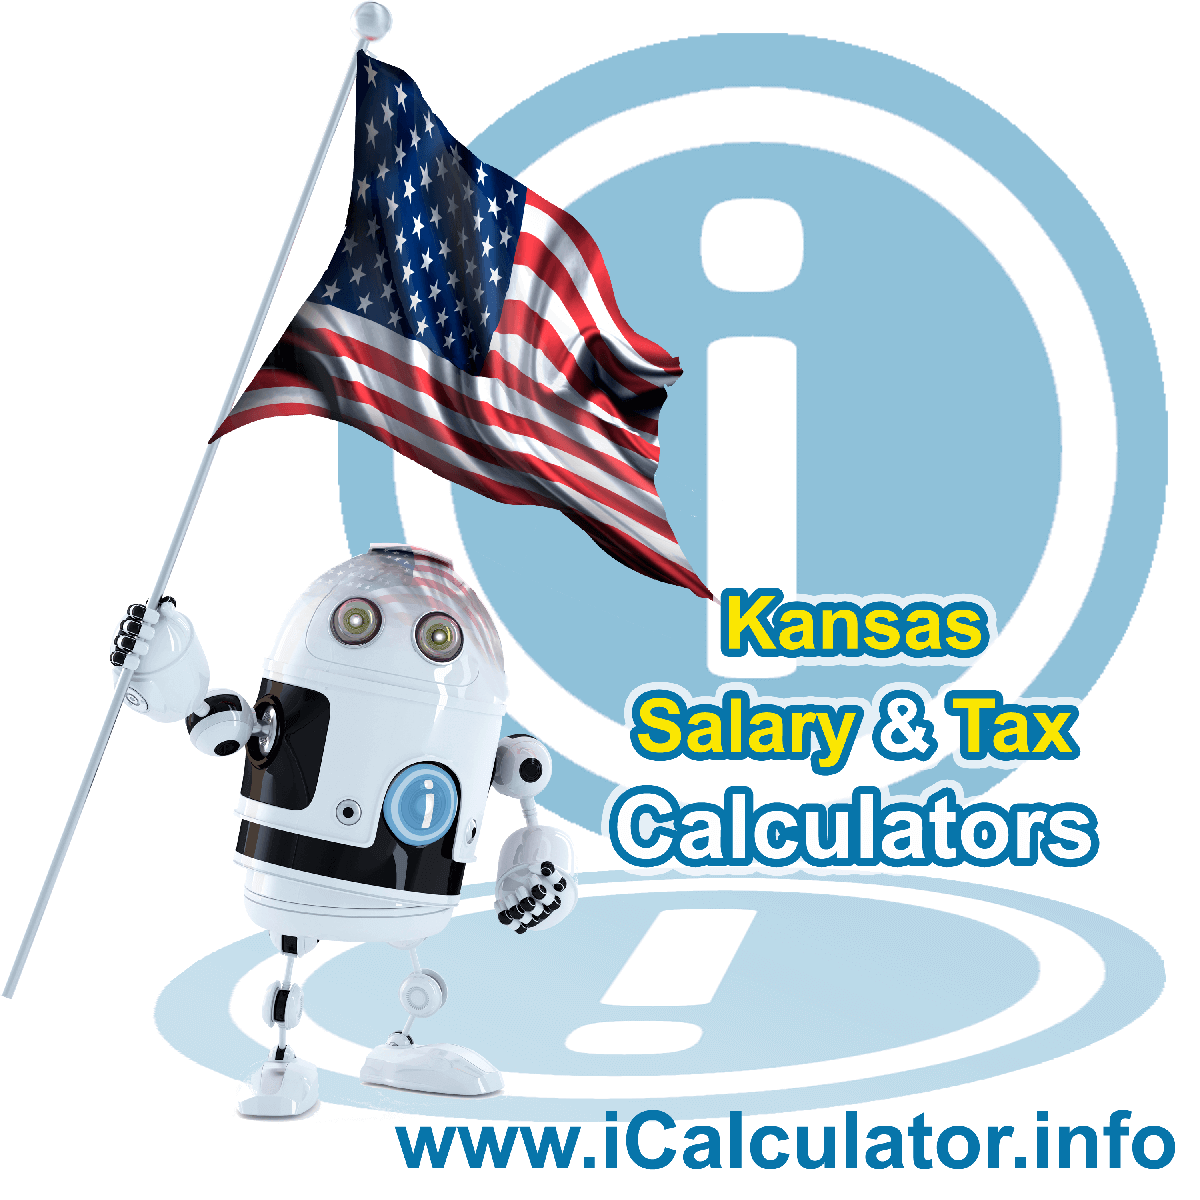 Kansas Salary Calculator 2020 | iCalculator | The Kansas Salary Calculator allows you to quickly calculate your salary after tax including Kansas State Tax, Federal State Tax, Medicare Deductions, Social Security, Capital Gains and other income tax and salary deductions complete with supporting Kansas state tax tables